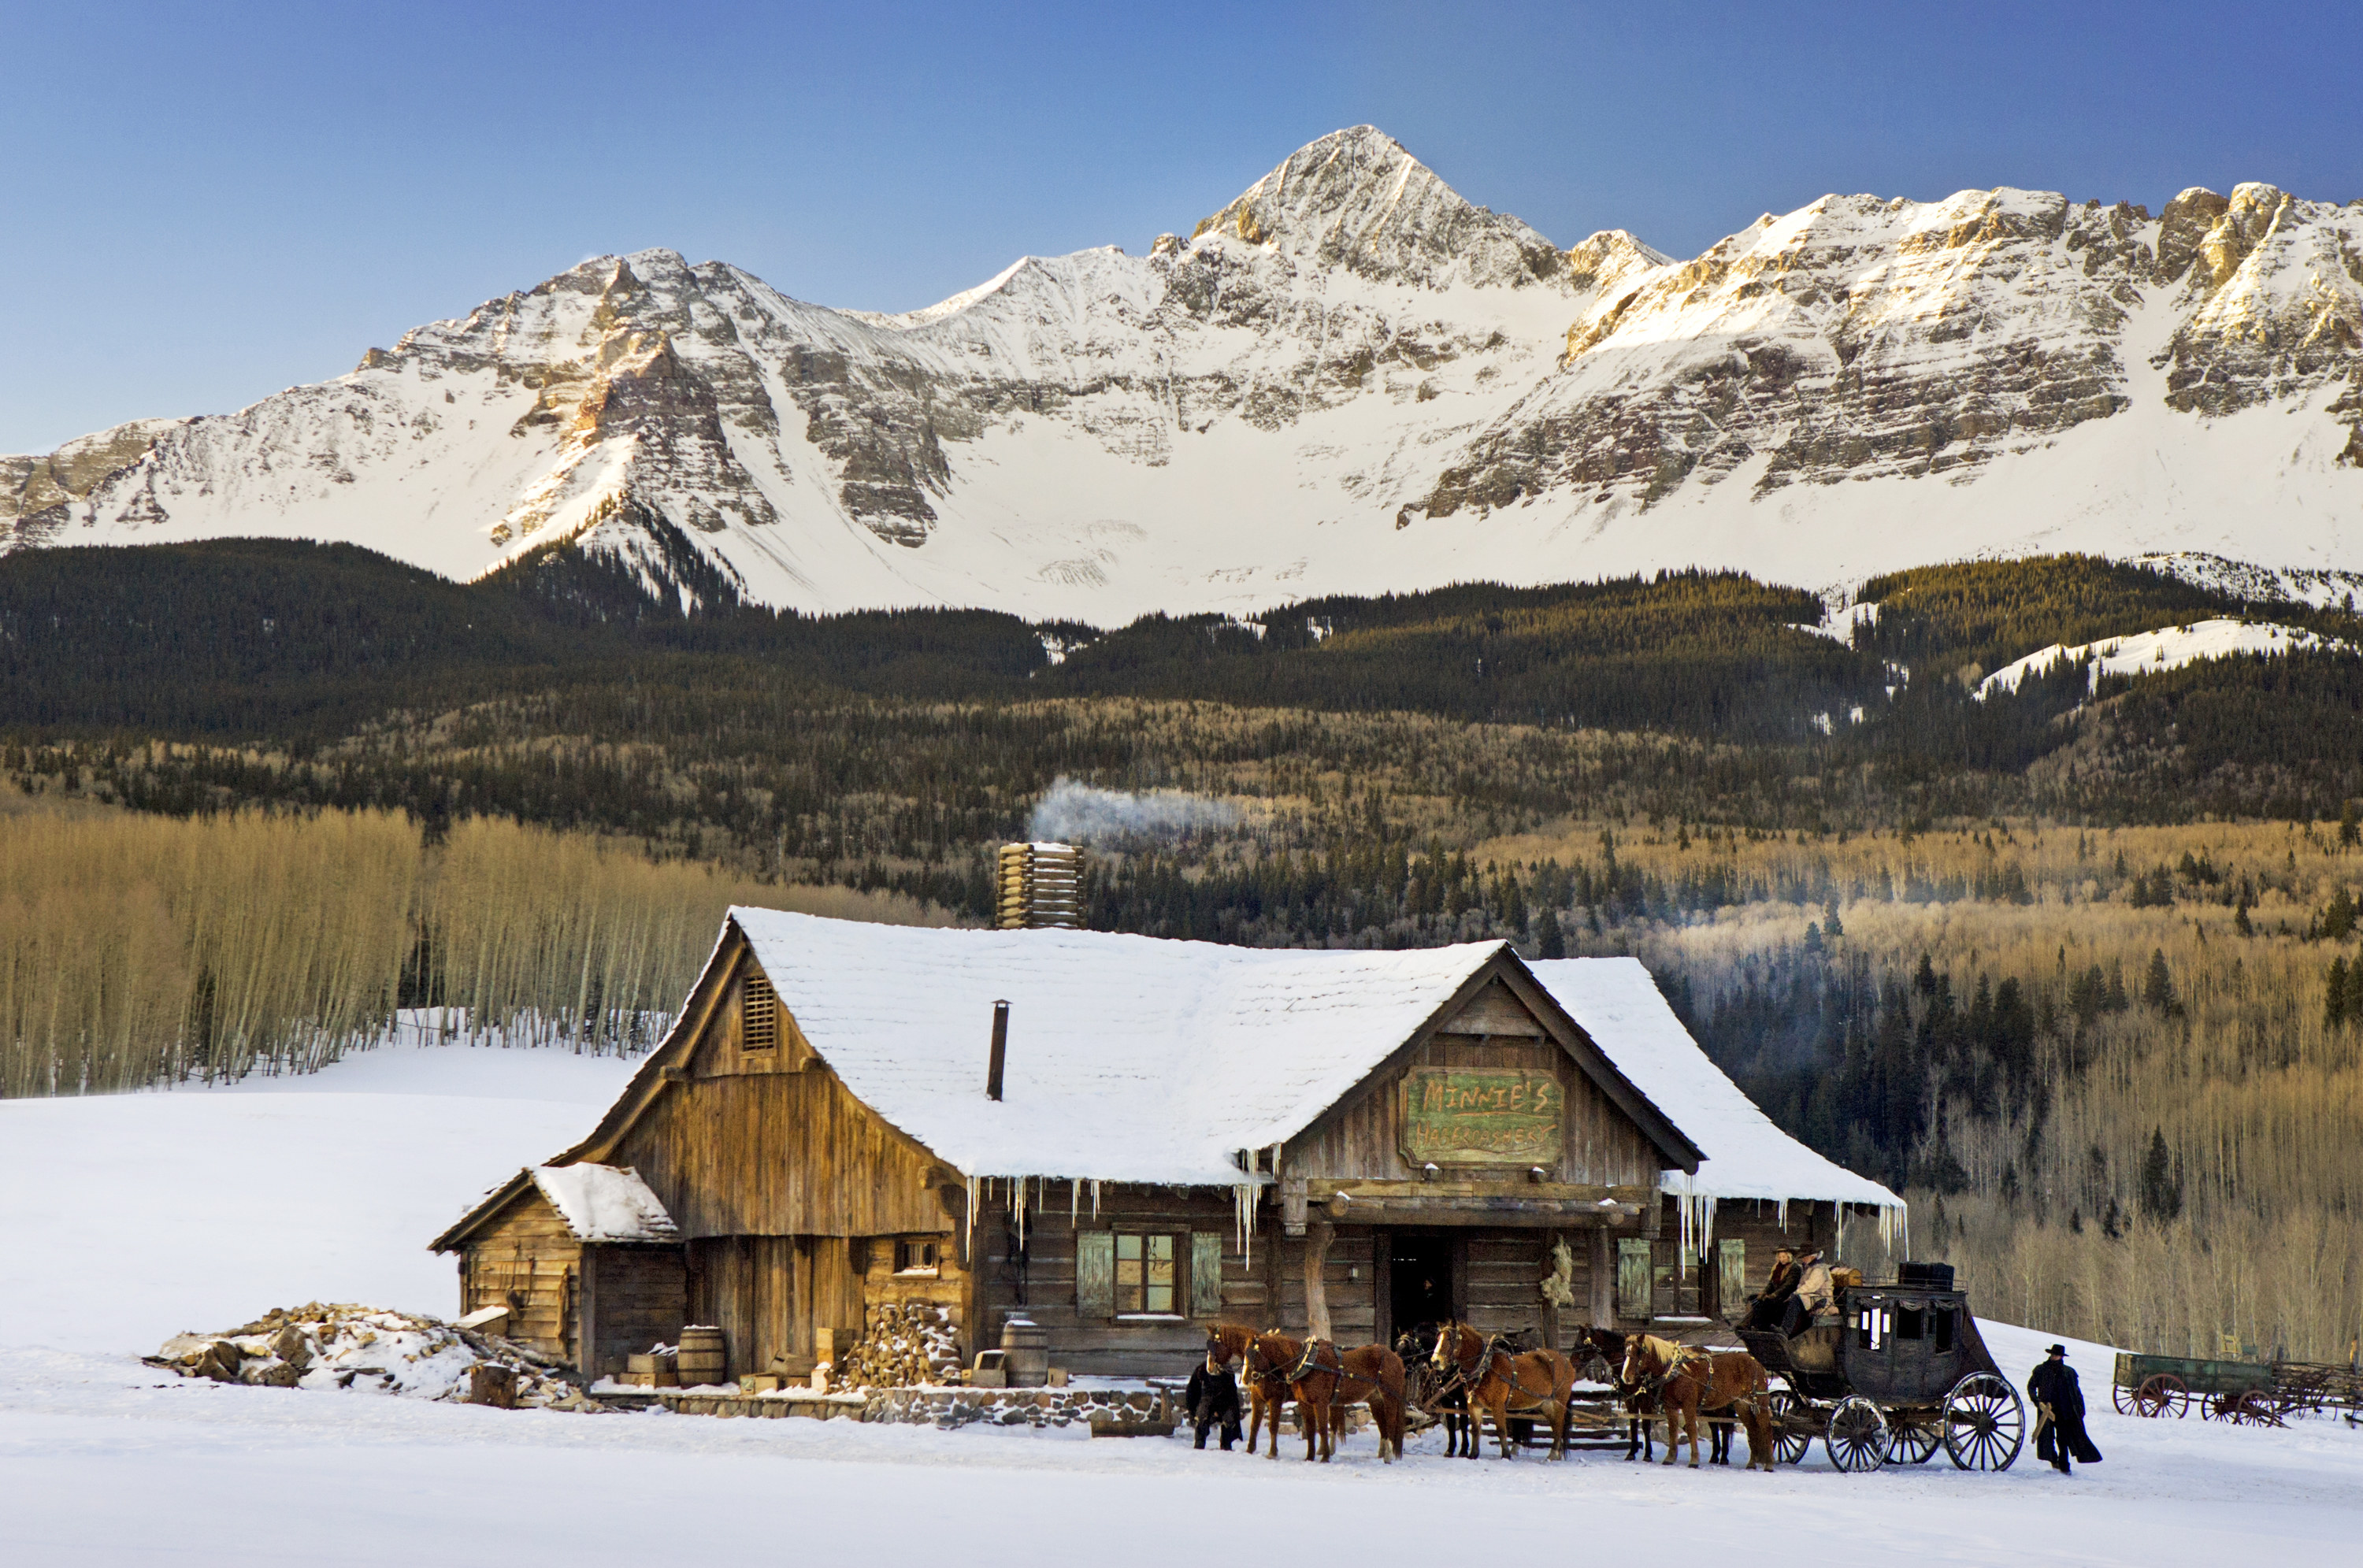 The Schmid Ranch - The Hateful Eight